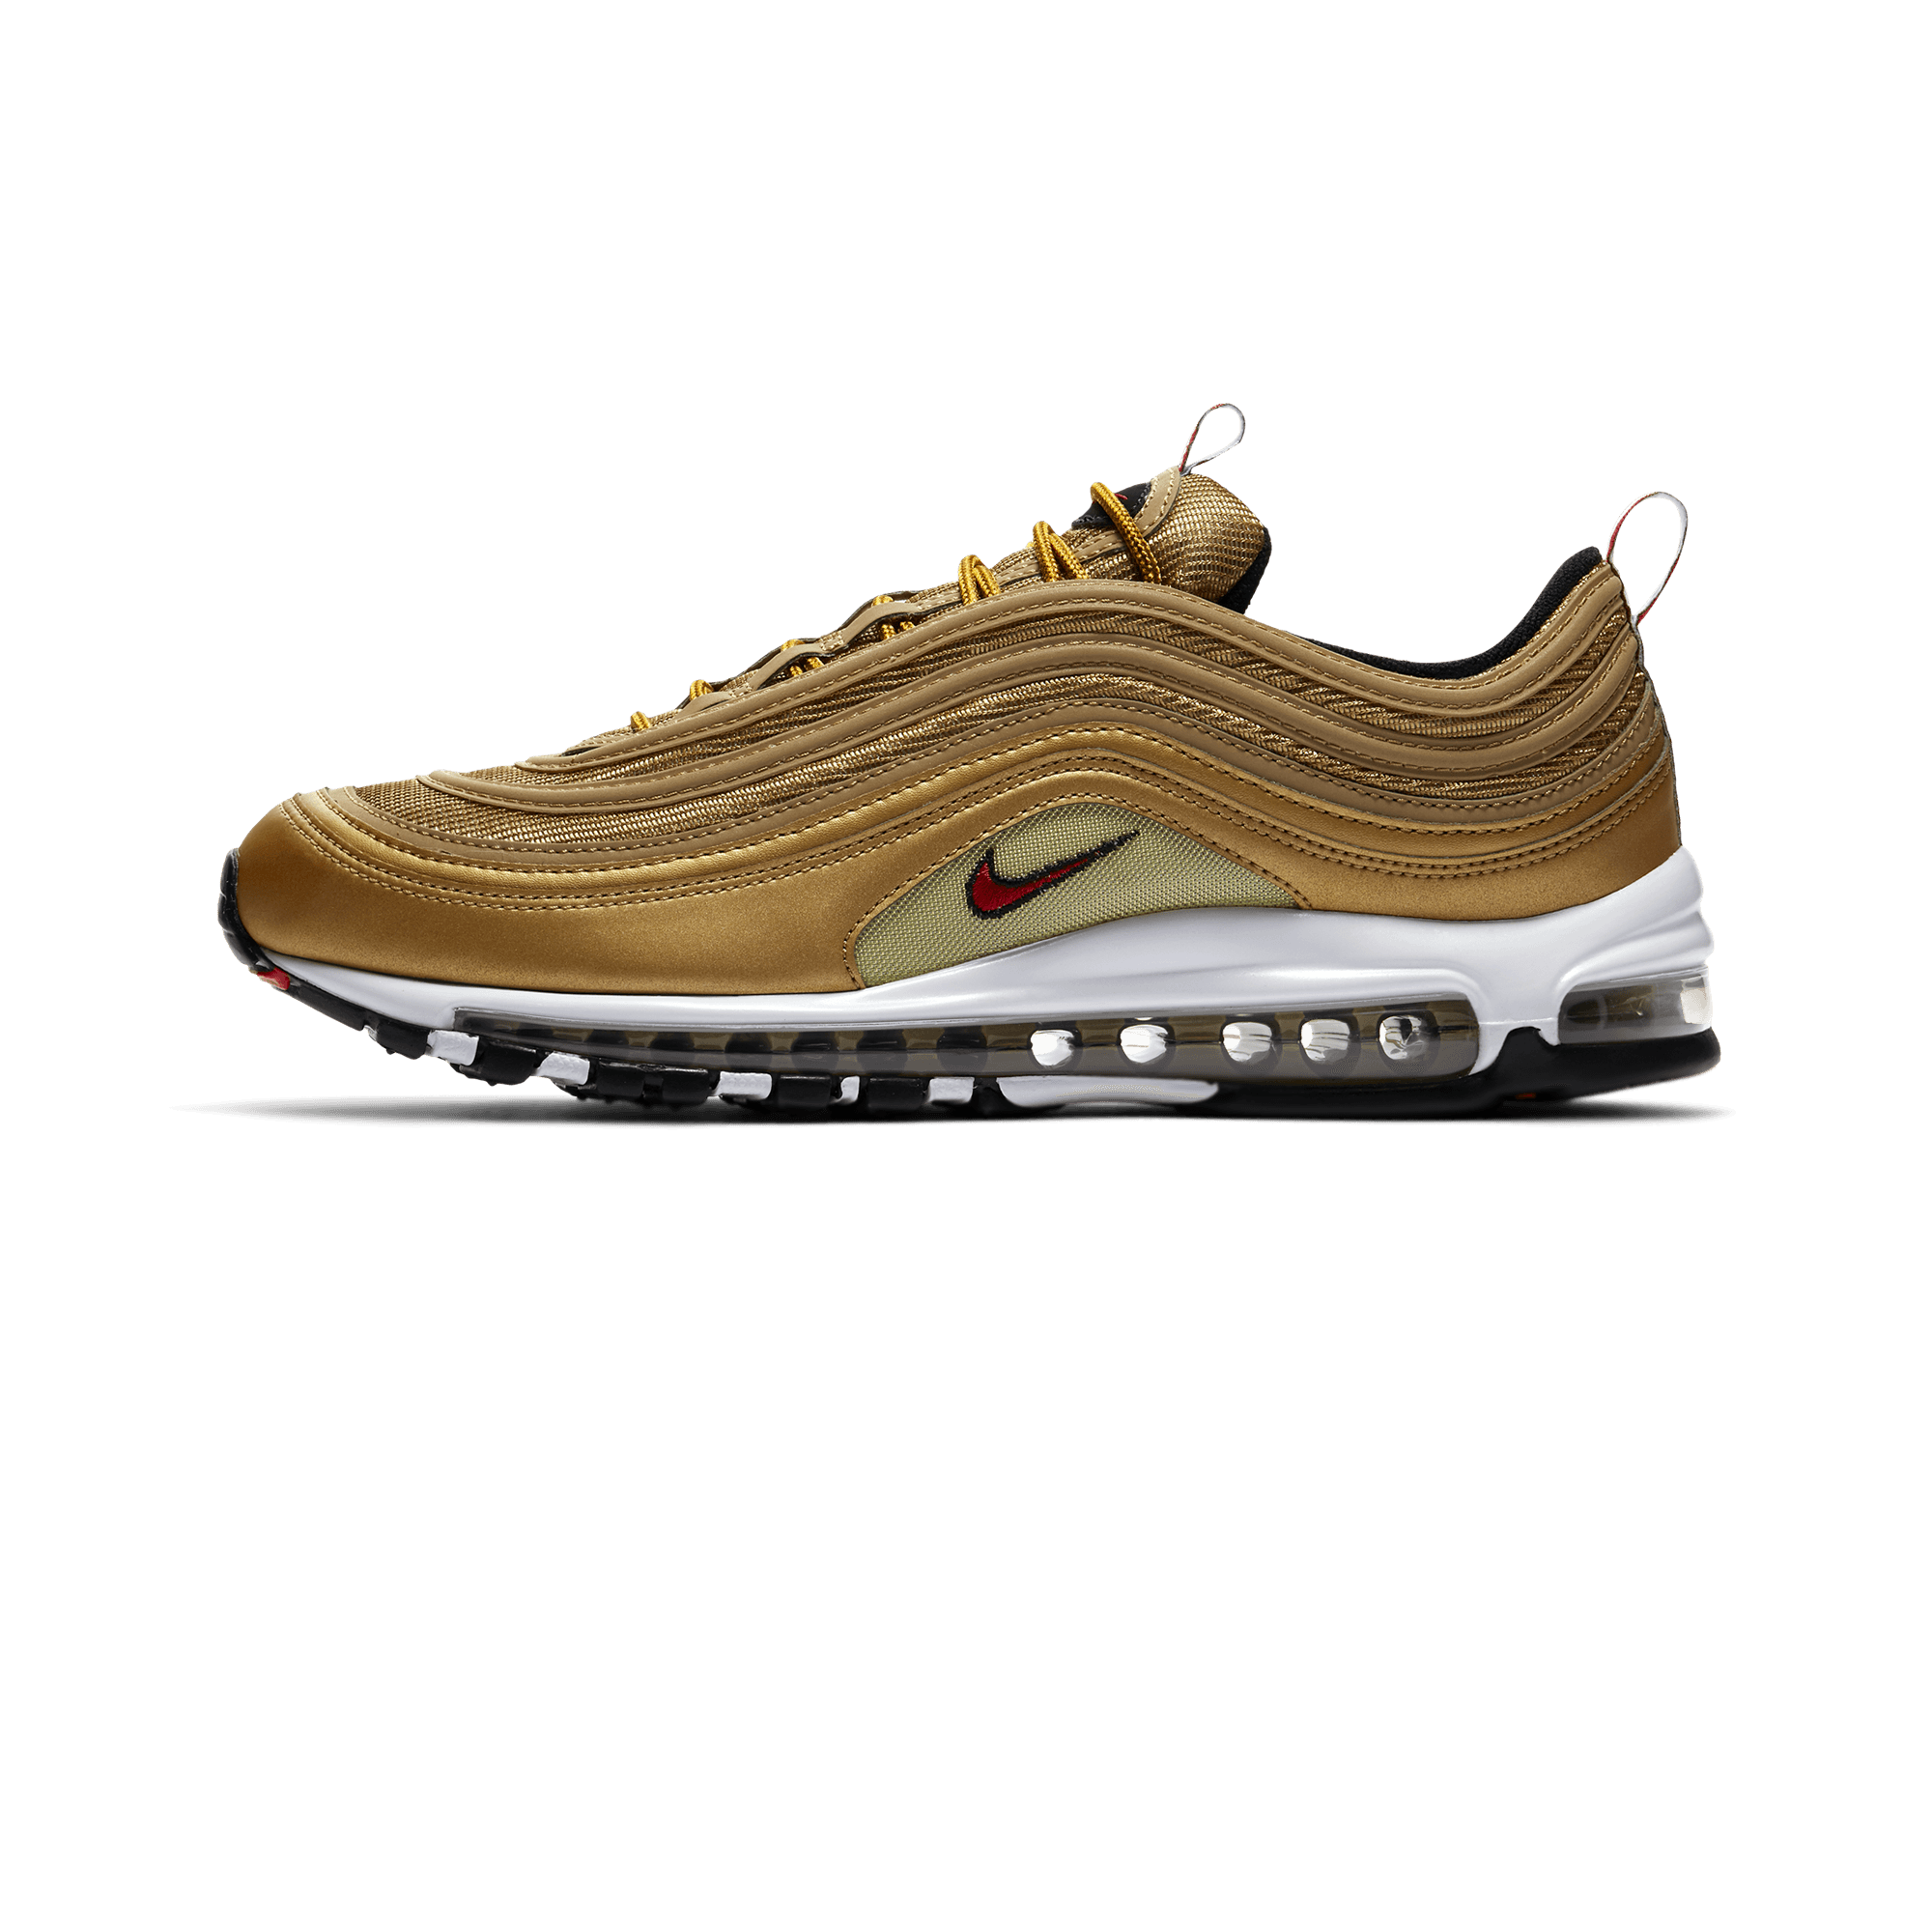 Air Max 97 OG Italian Flag gold/varsity red